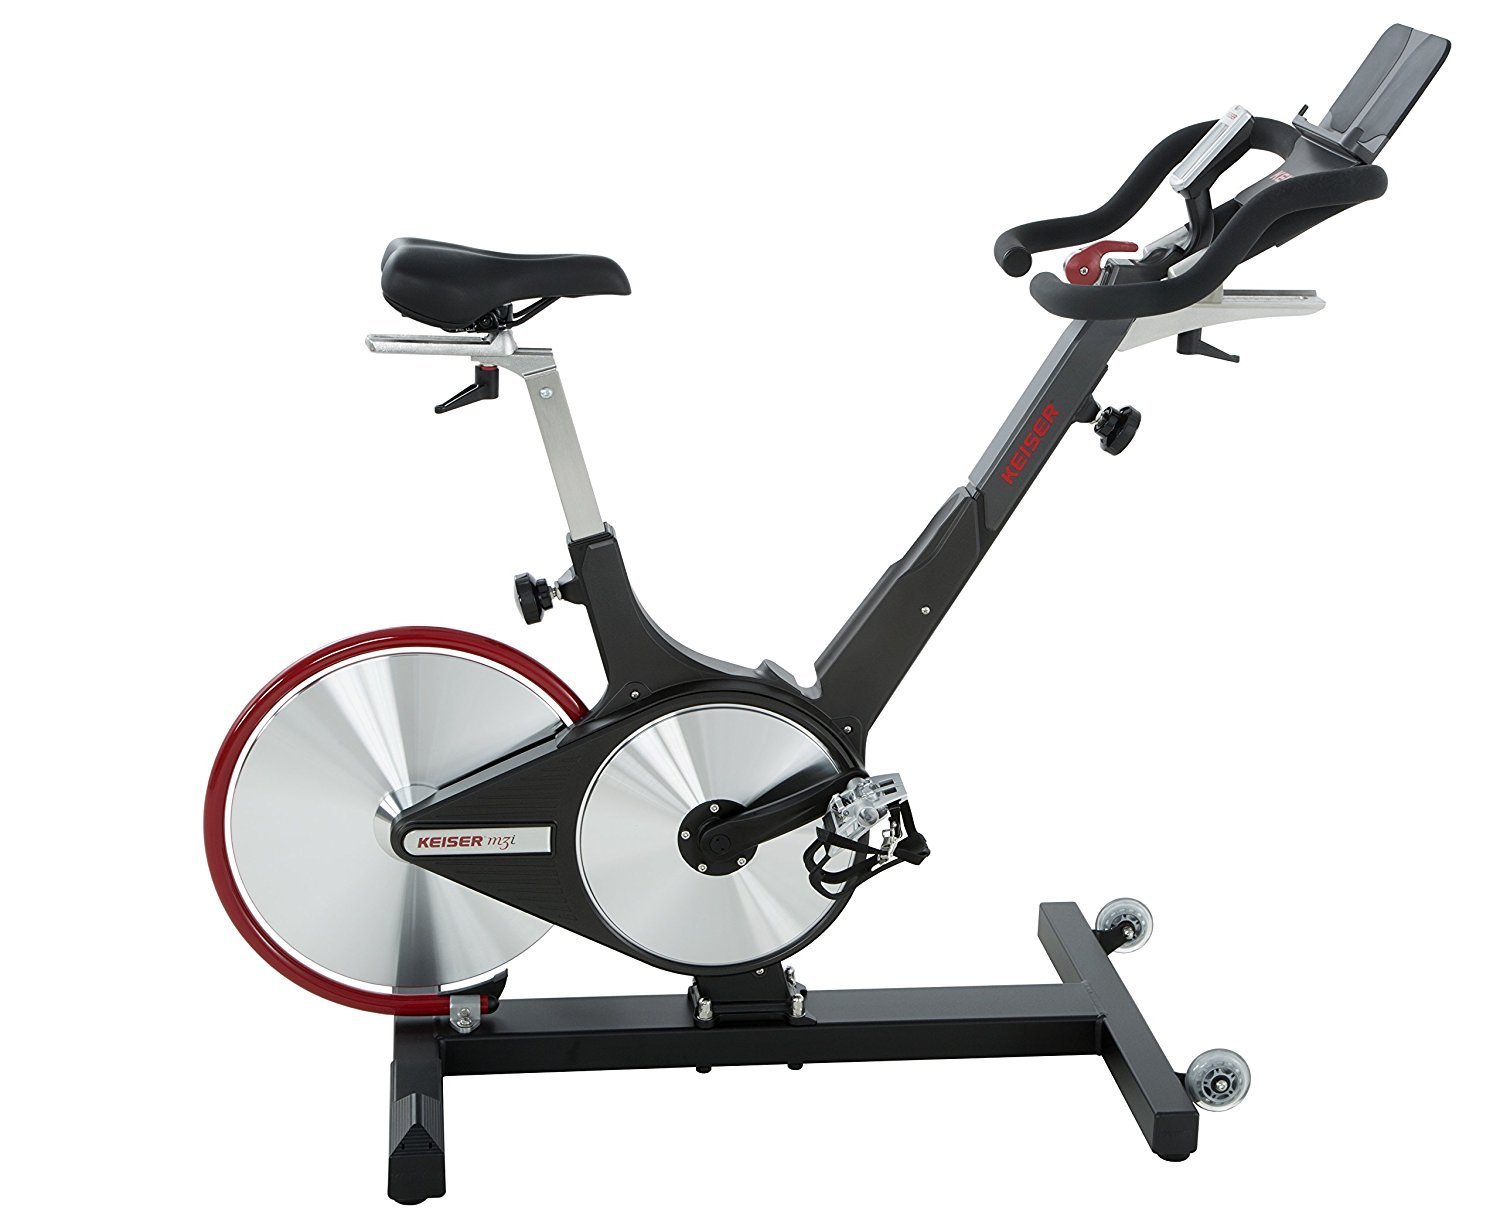 Keiser M3i Indoor Cycle Spin Bike Black Friday Deal 2020